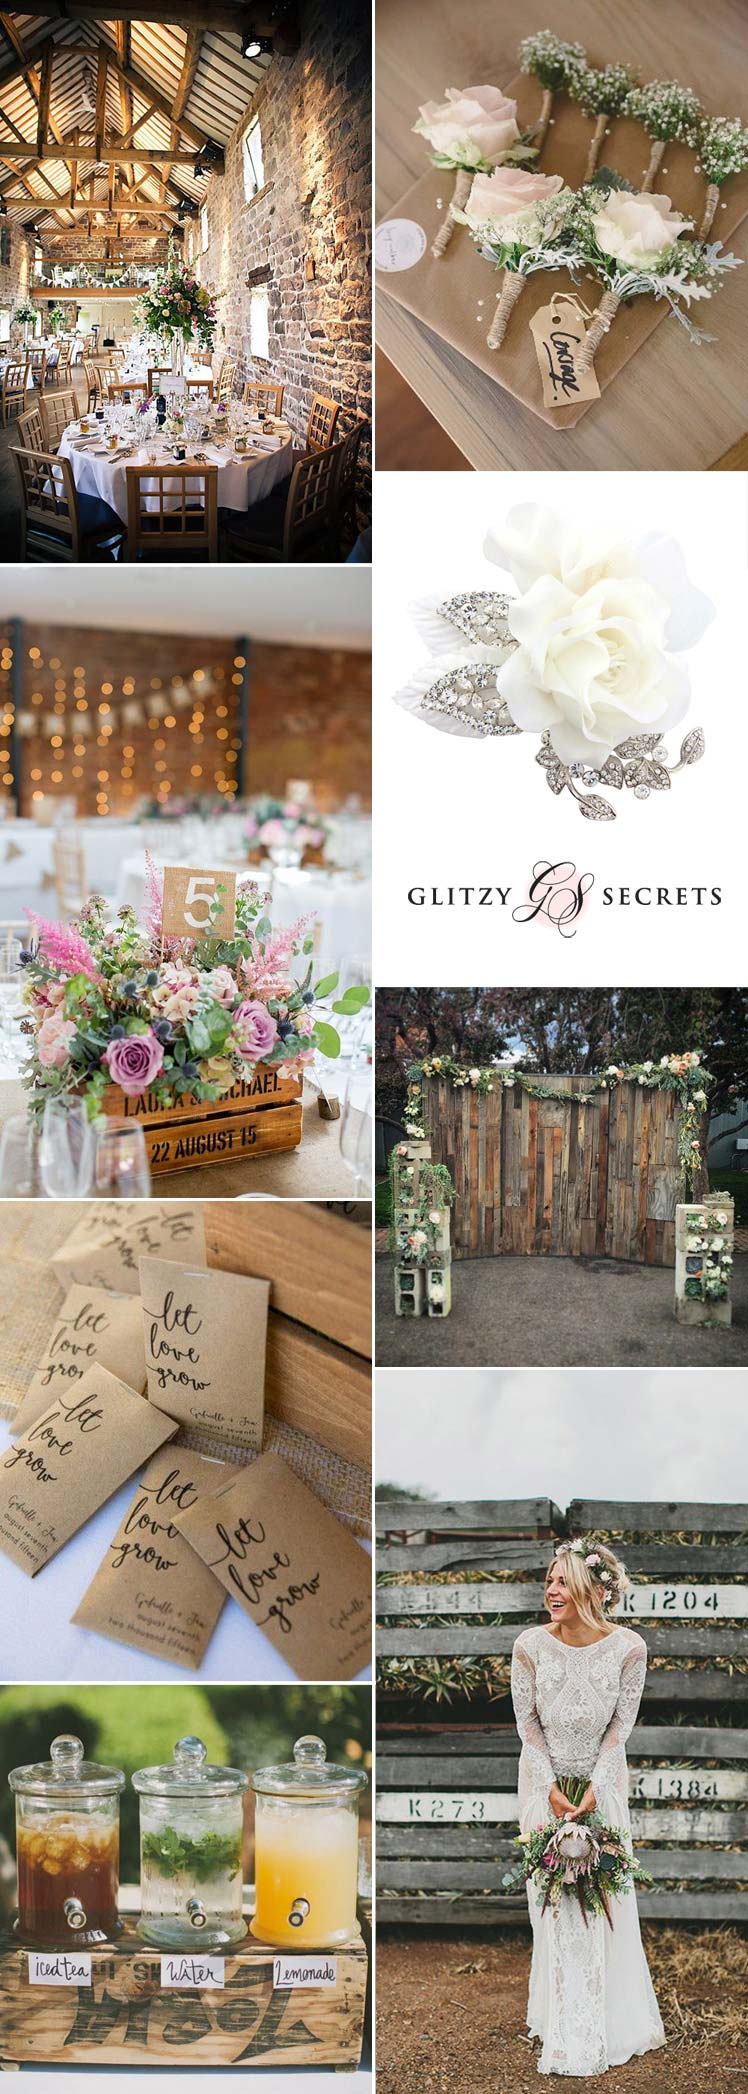 Inspiration for a rustic country wedding theme